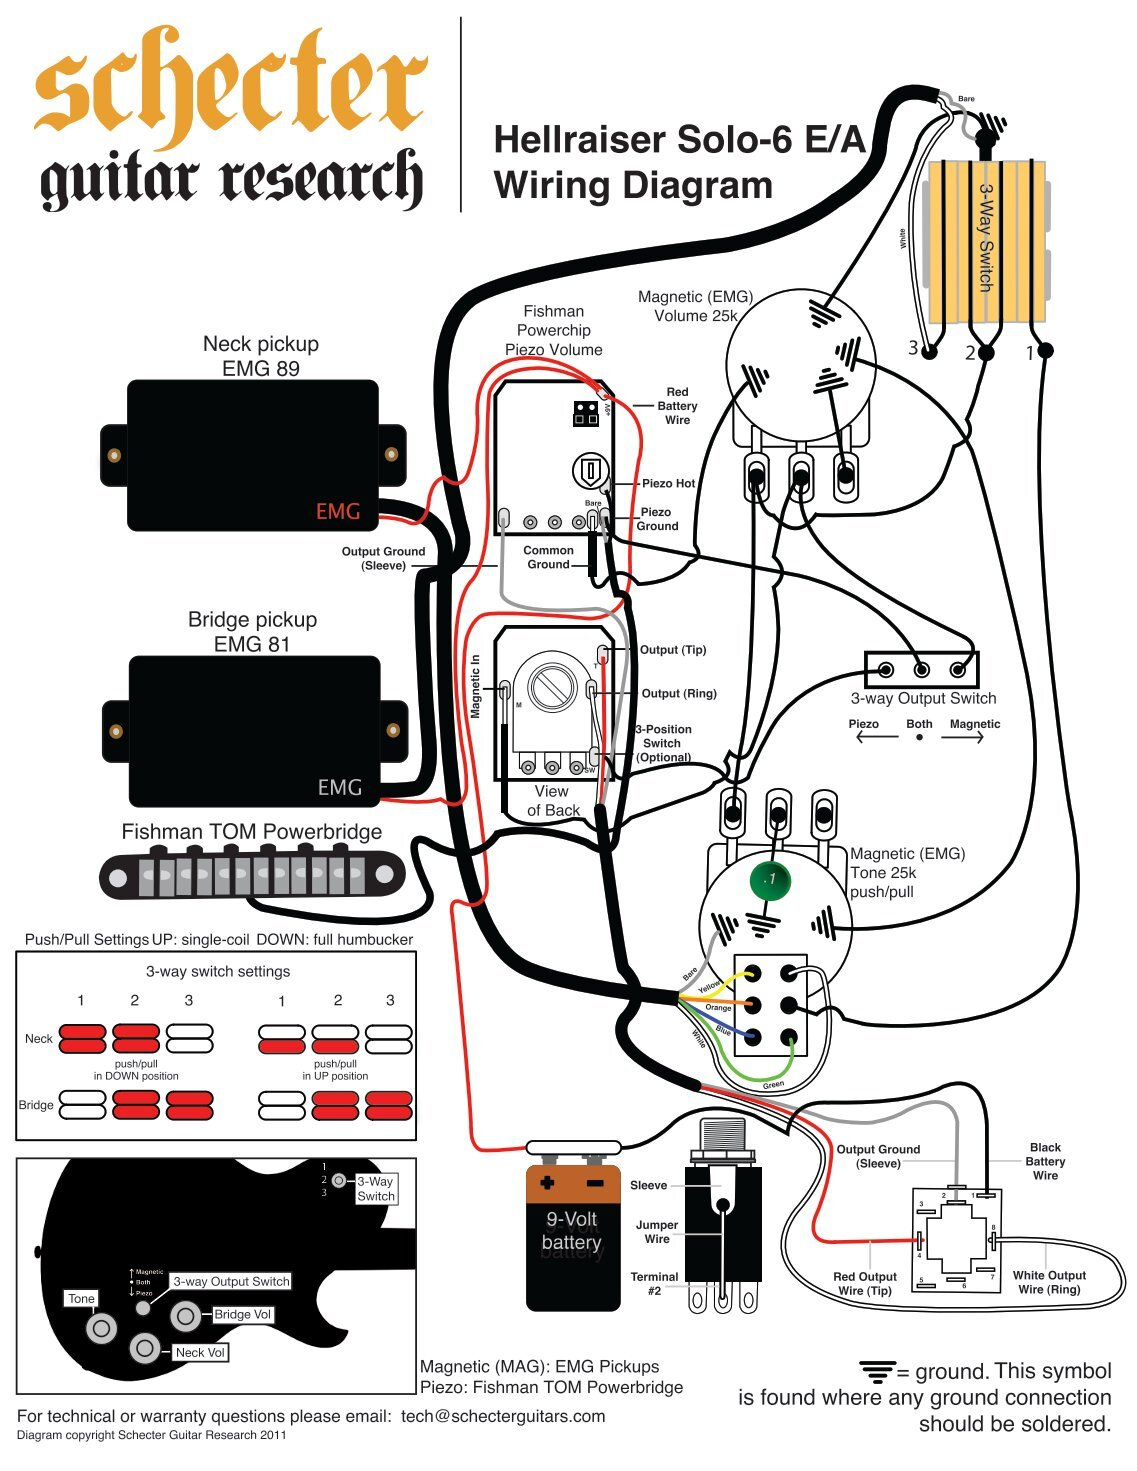 electric guitar wiring diagram for schecter schecter hellraiser wiring elsavadorla